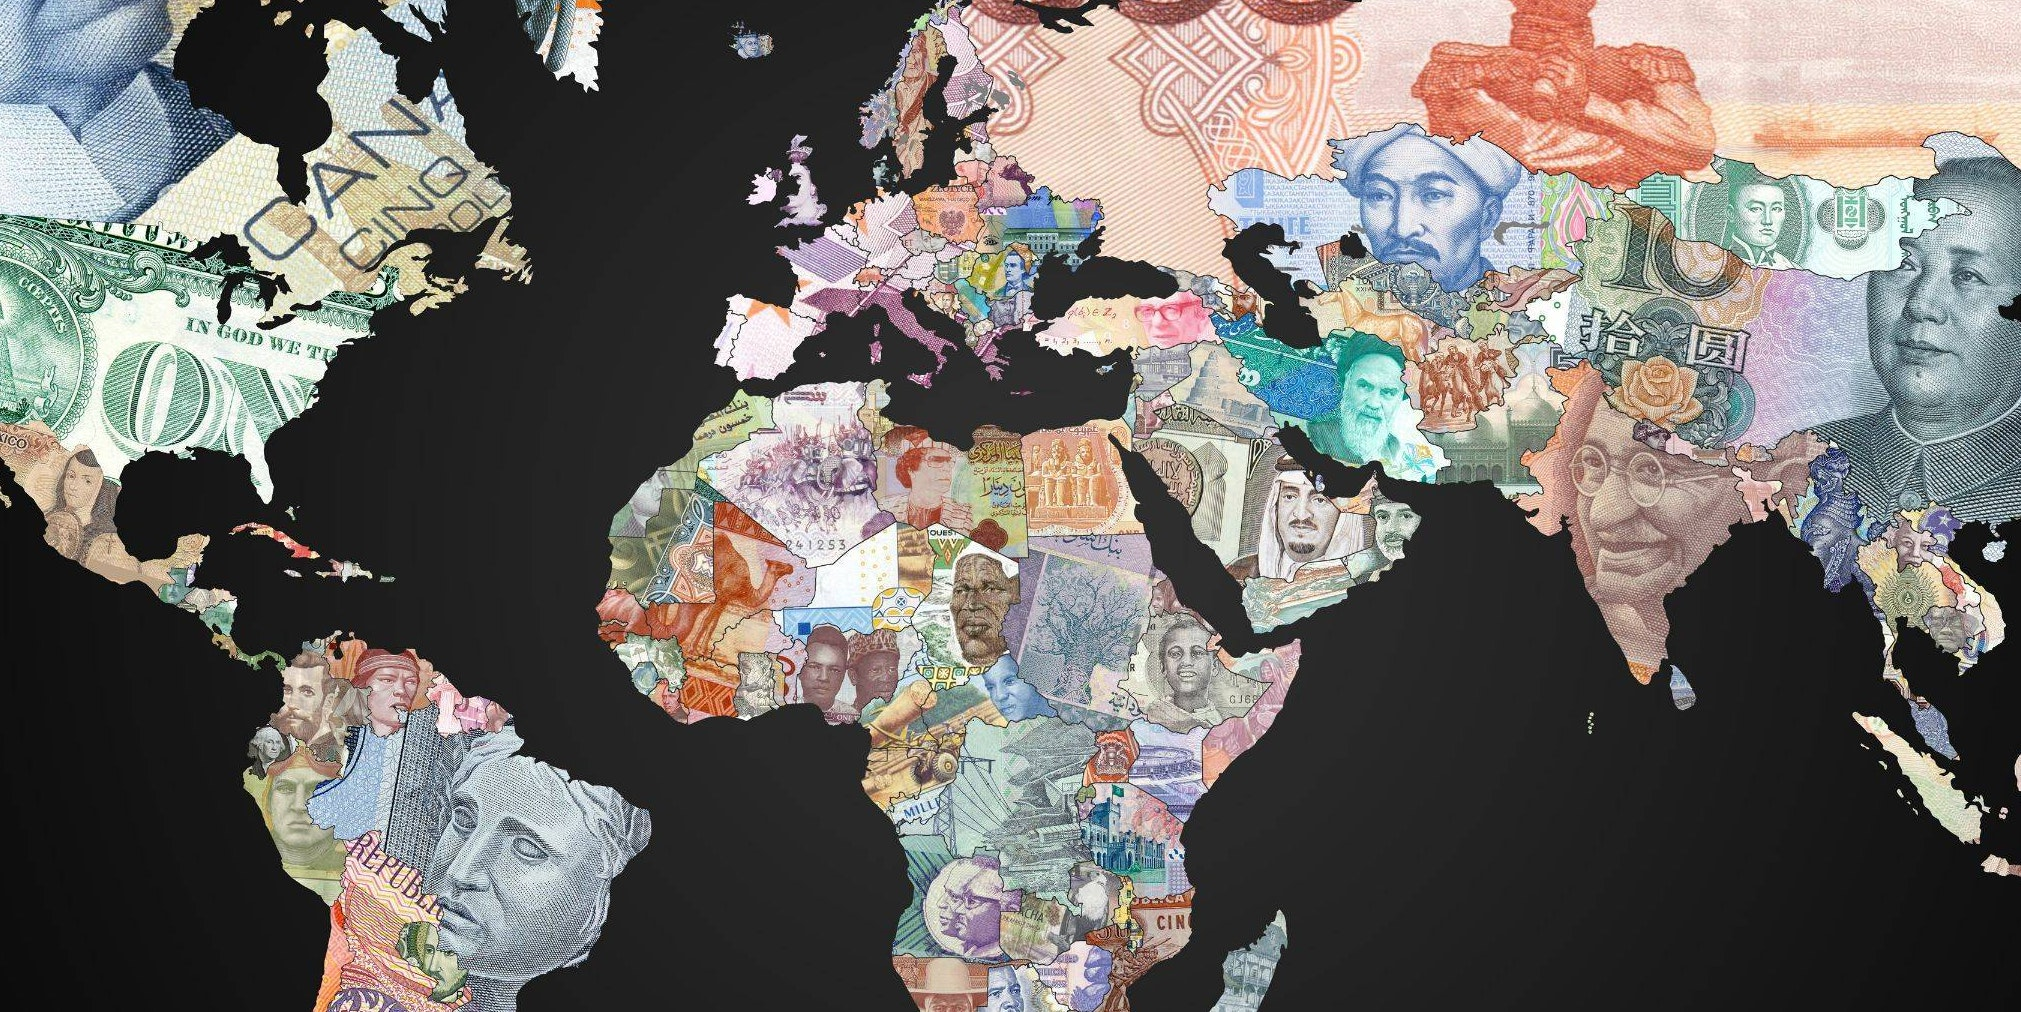 Search World Map.Google Ceo Explains How Google Maps Can Make Money On Your Search